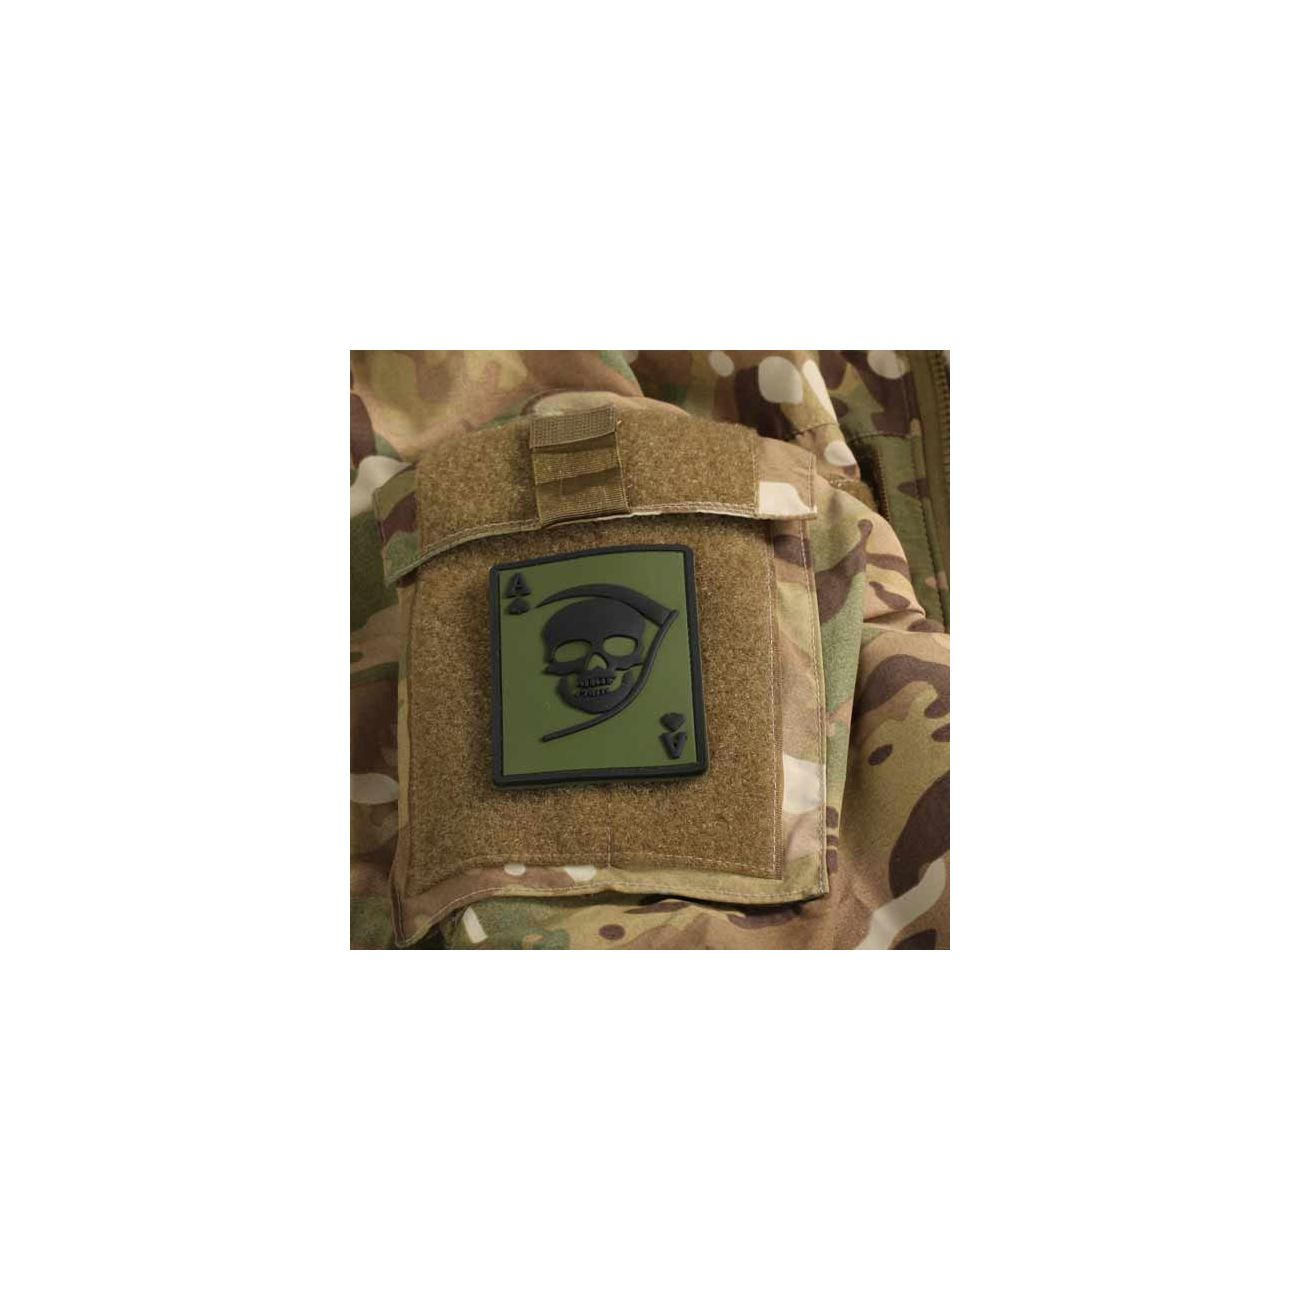 3D Rubber Patch Death Ace oliv schwarz 1